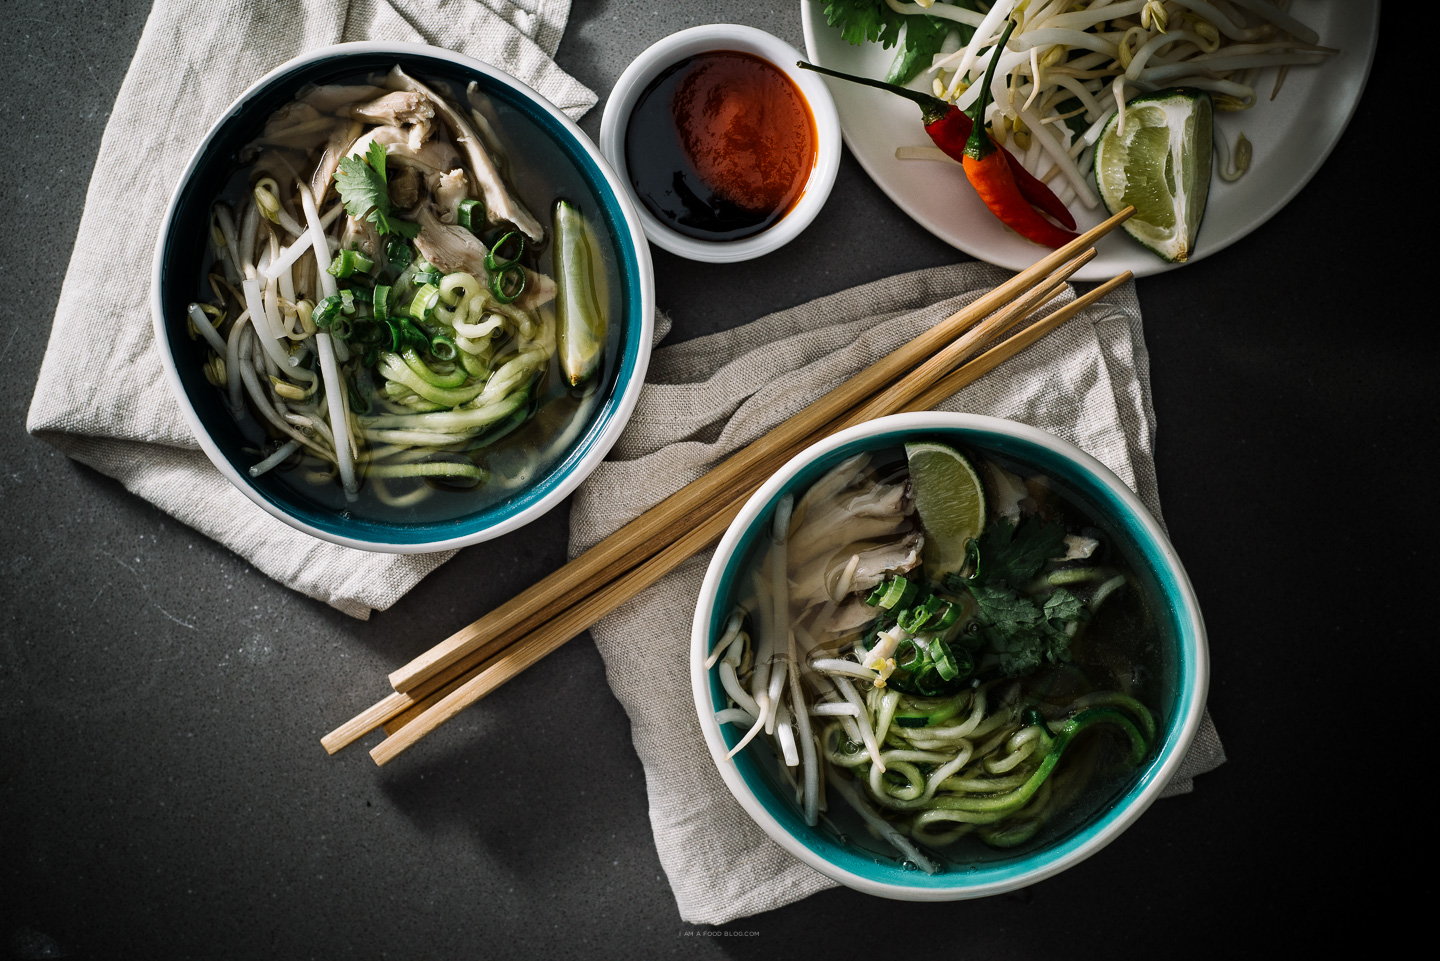 chicken pho with zucchini noodles recipe - www.iamafoodblog.com